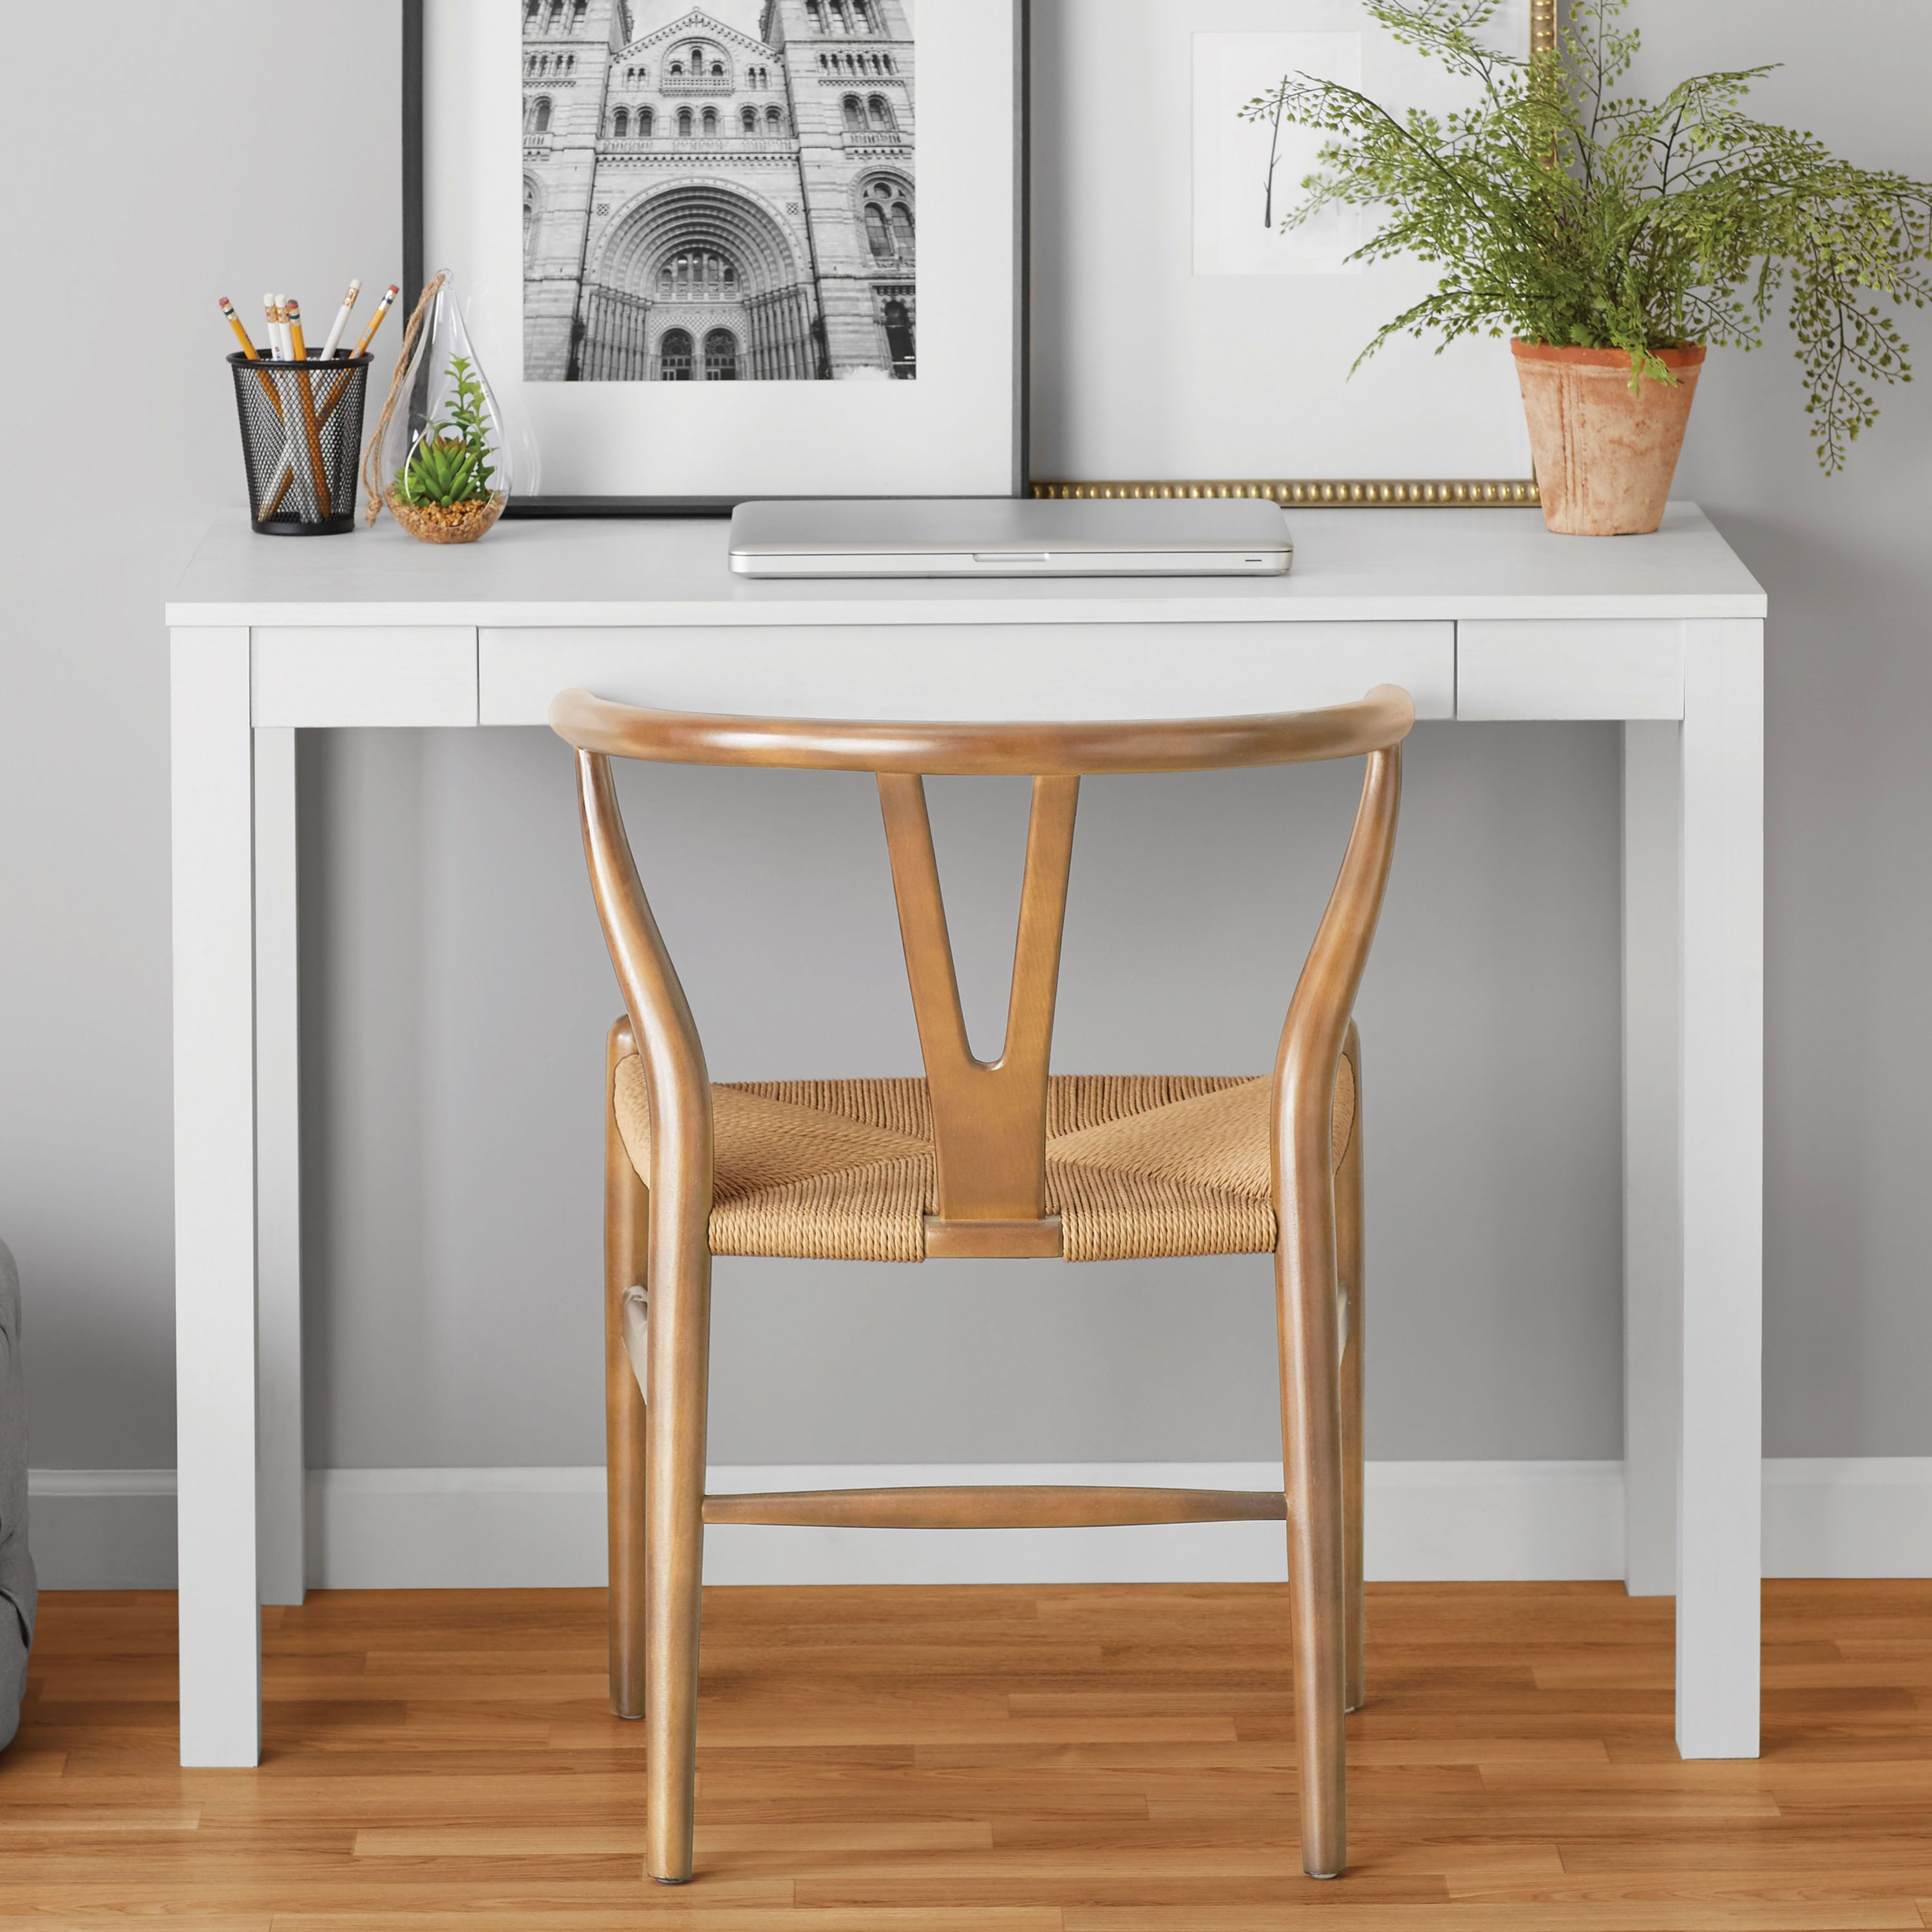 Mainstays Parsons Writing Desk With Storage Drawer Multiple Finishes Walmart Com In 2020 Desk Storage White Writing Desk Small Desk